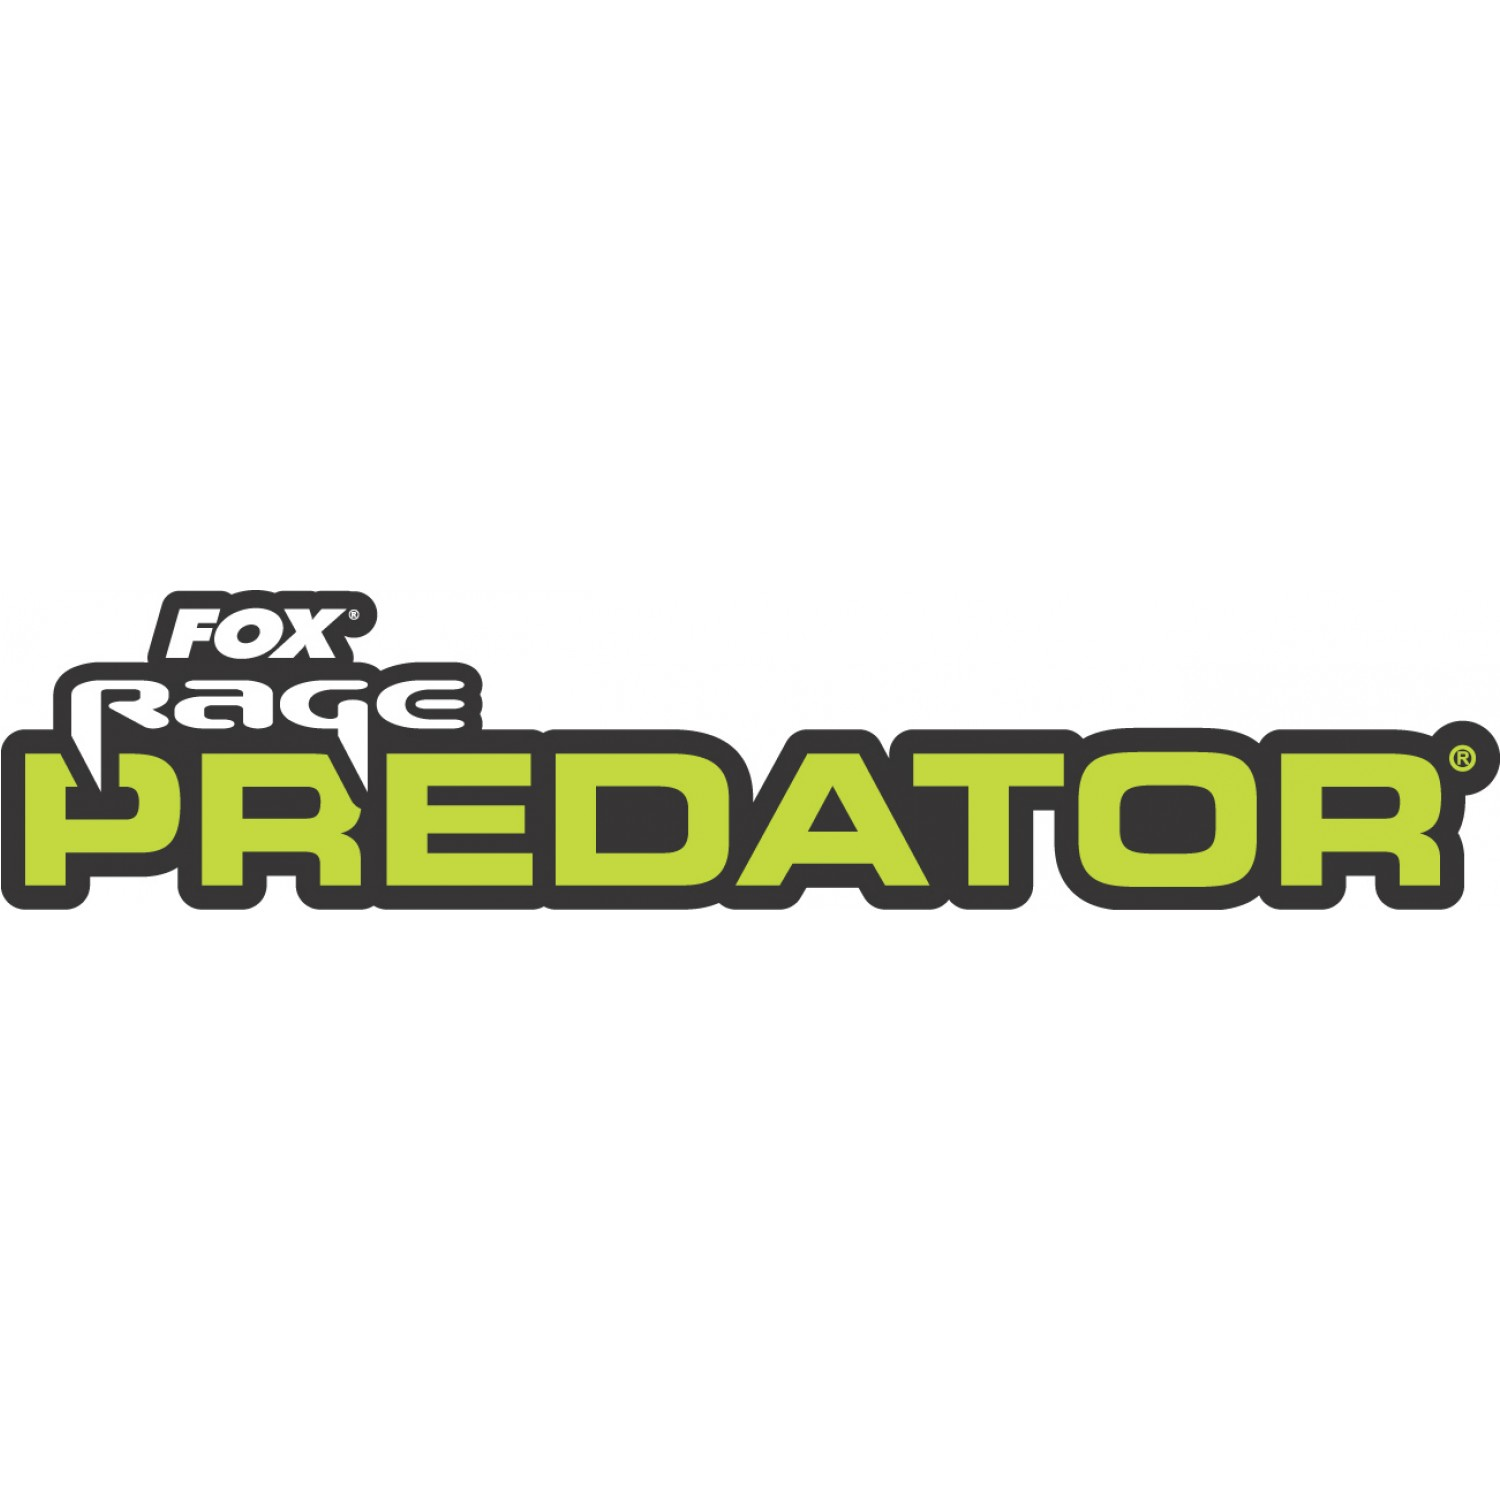 Fox Predator HD Stubby Slider